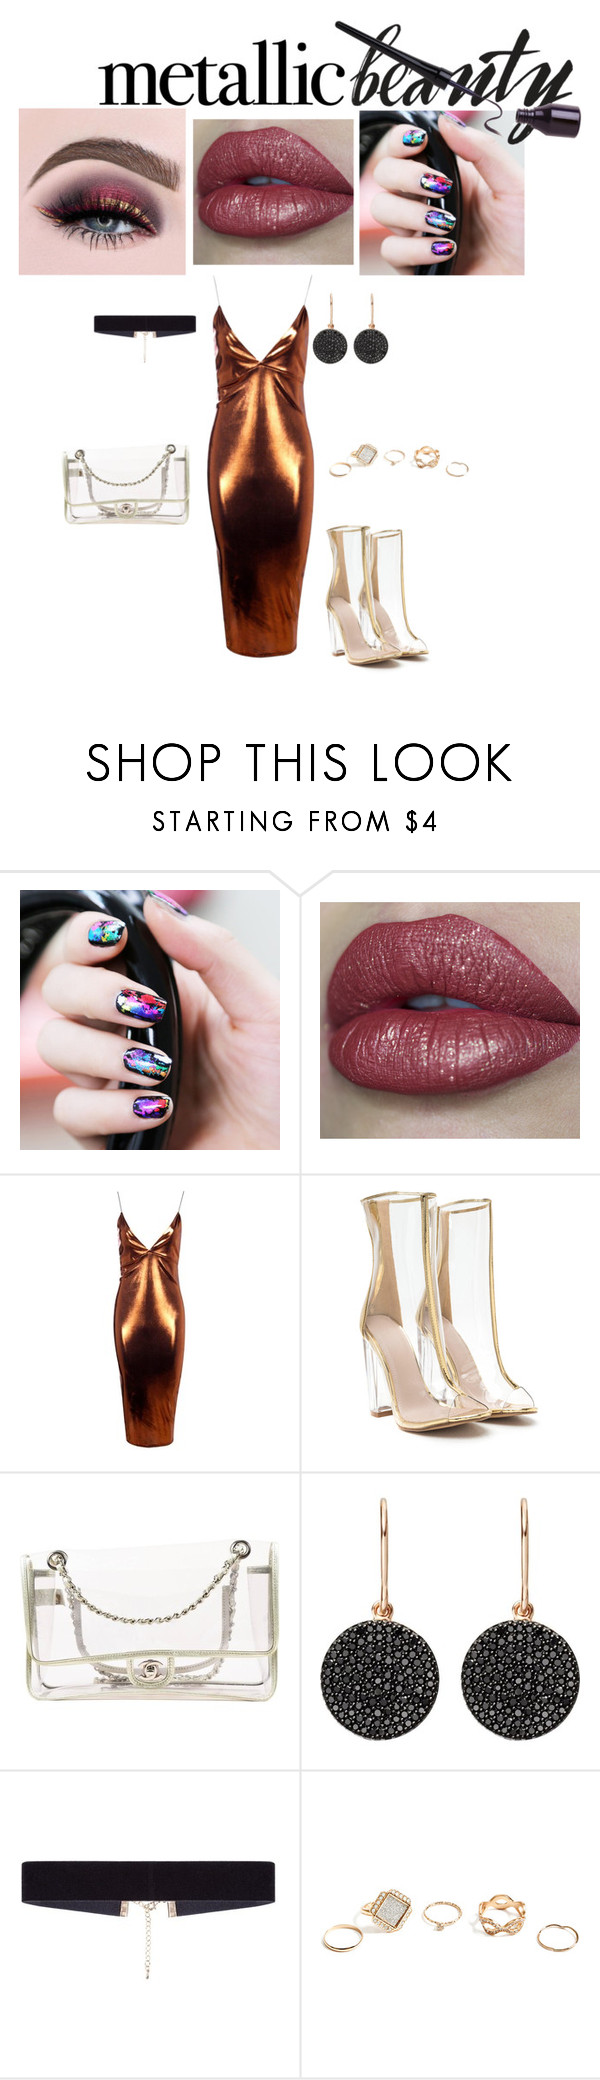 """Untitled #97"" by lawsy89 ❤ liked on Polyvore featuring beauty, Boohoo, Chanel, Astley Clarke, 8 Other Reasons and GUESS"